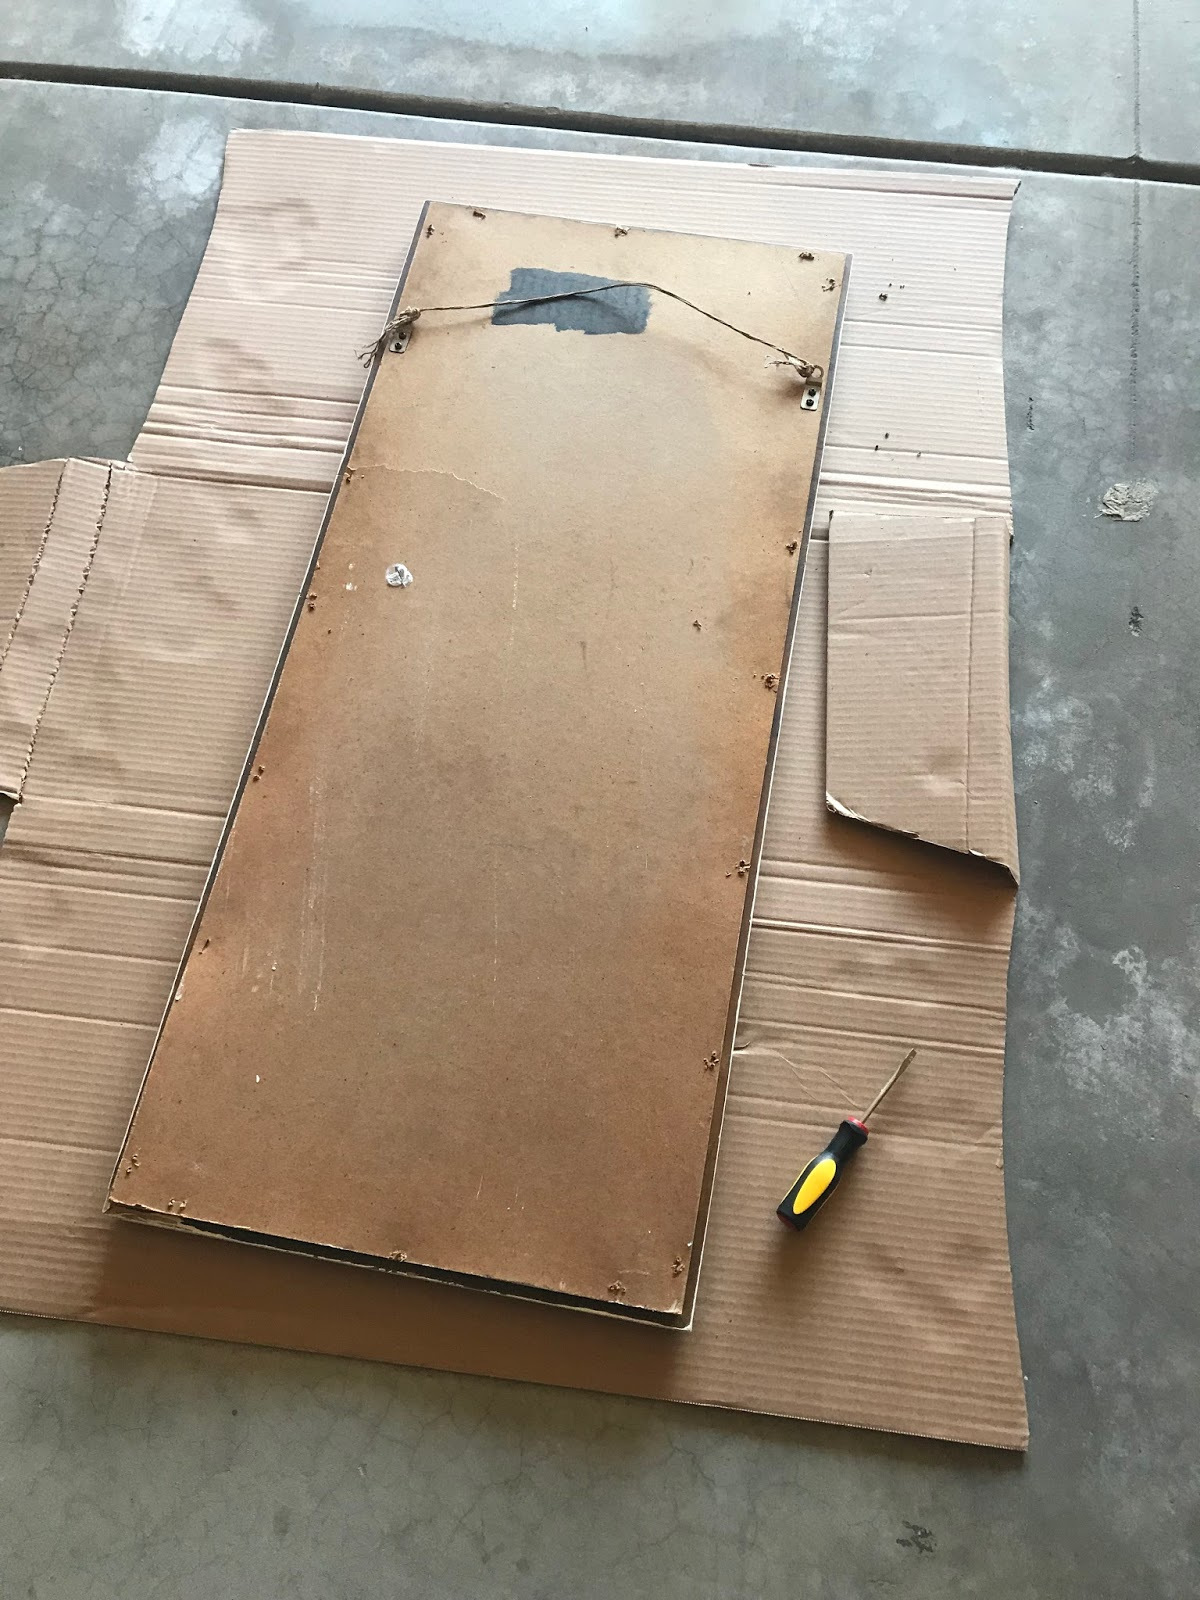 removing the back of the mirror